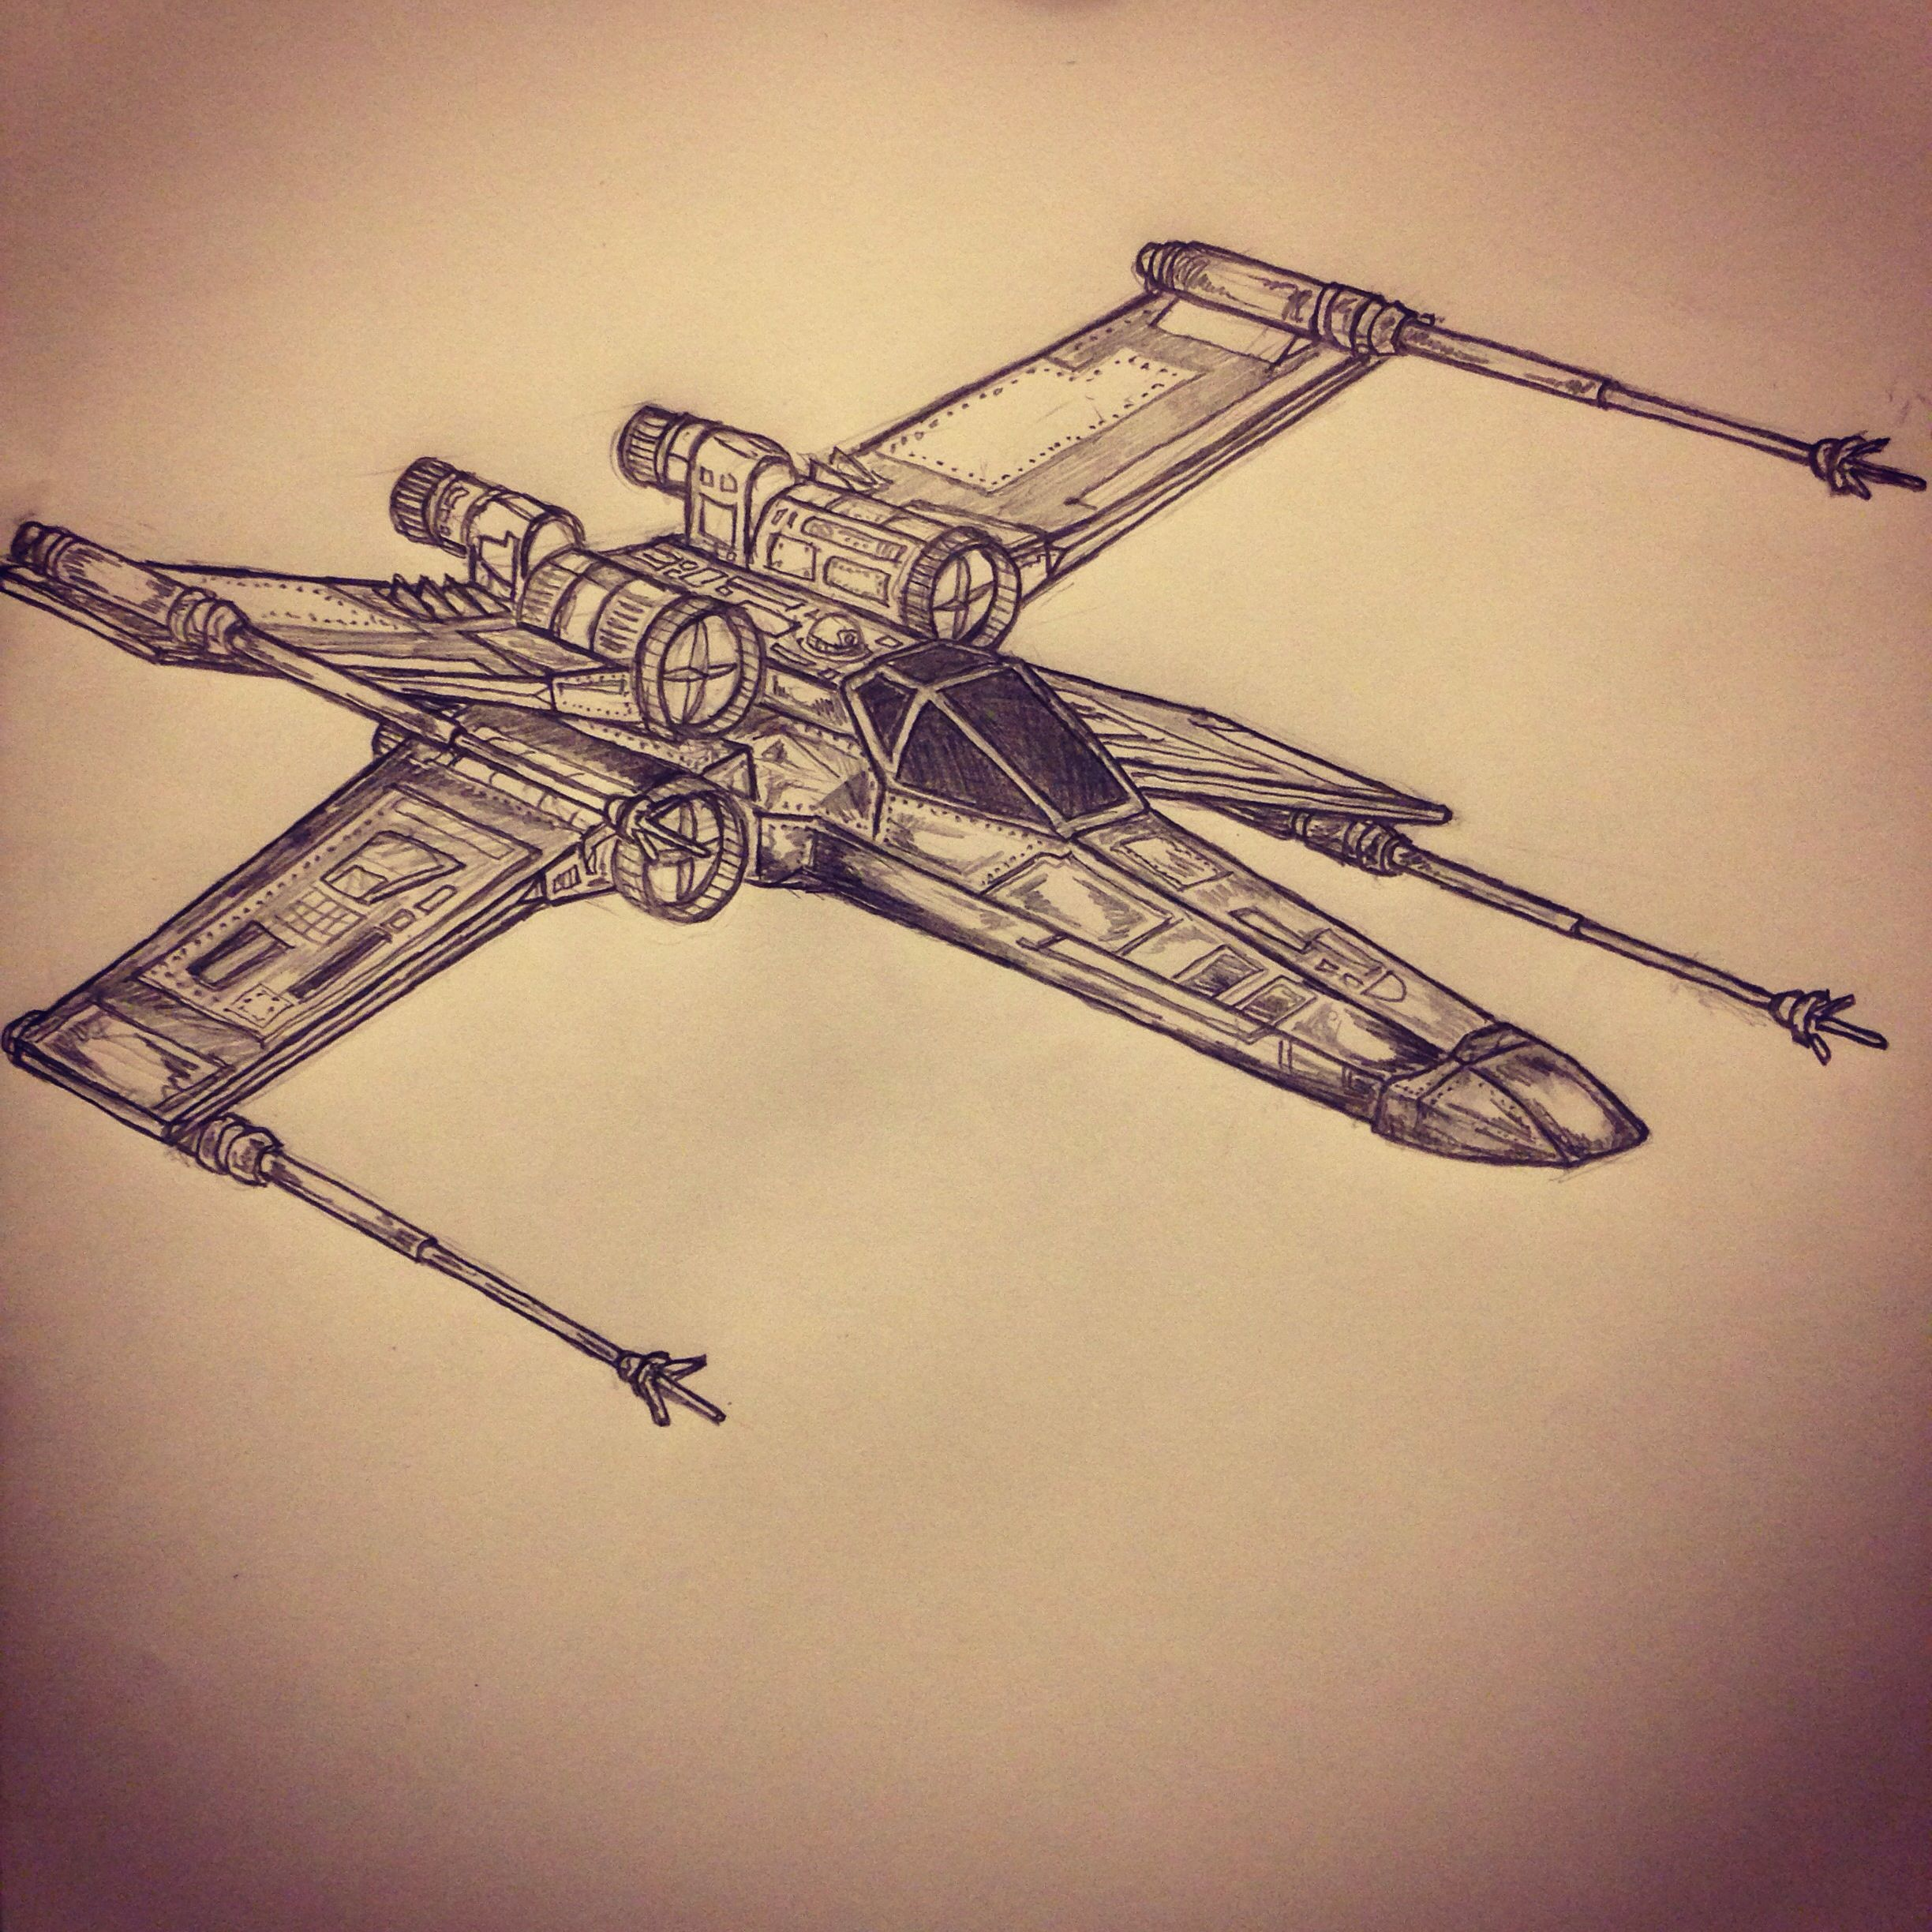 2448x2448 X Wing Fighter Star Wars Tattoo Sketch By